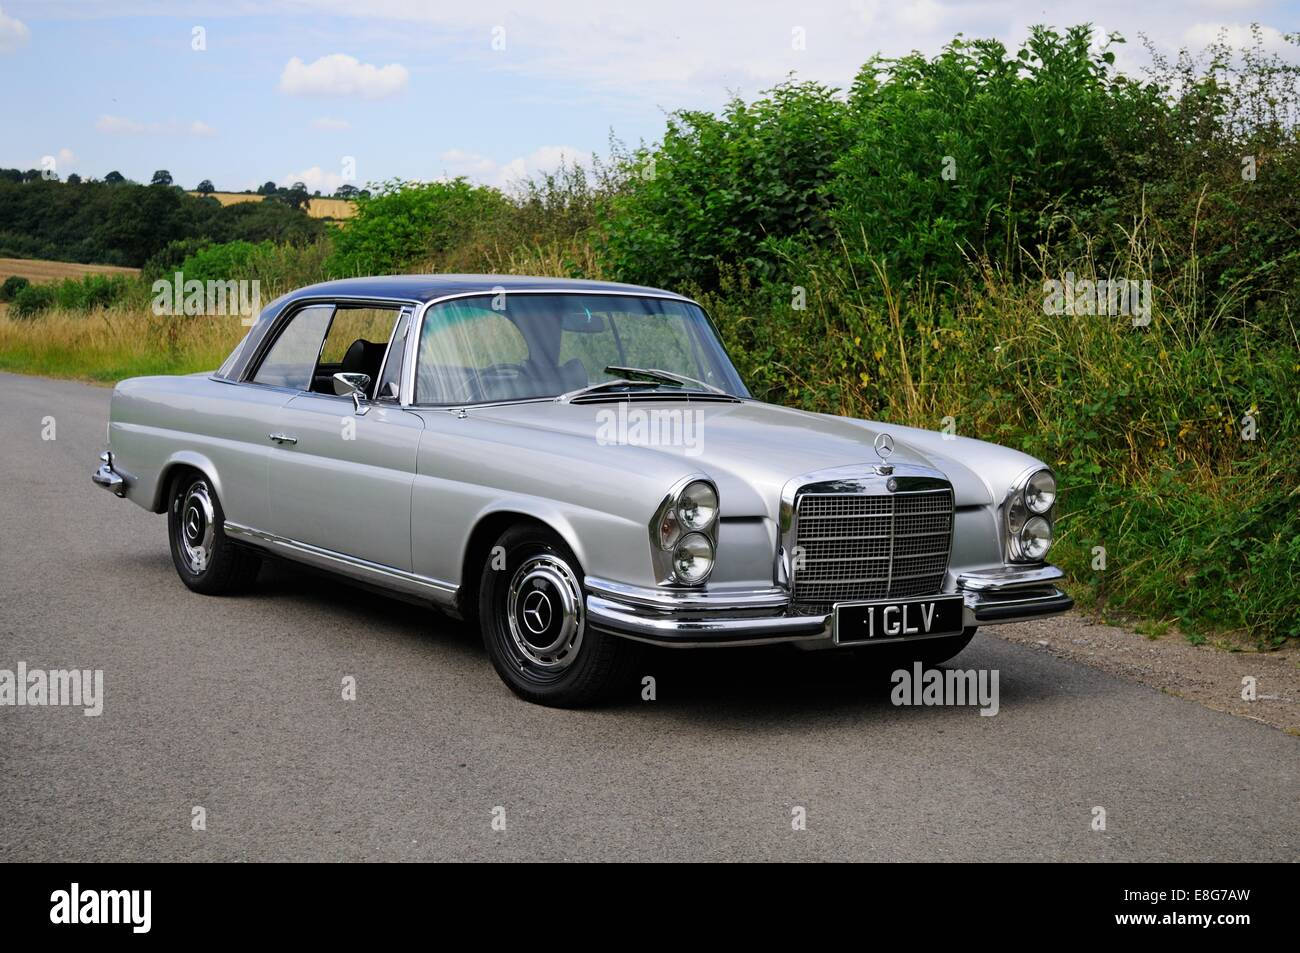 Mercedes Benz 280SE Coupe Standing By A Hedge On A Country Lane   Stock  Image